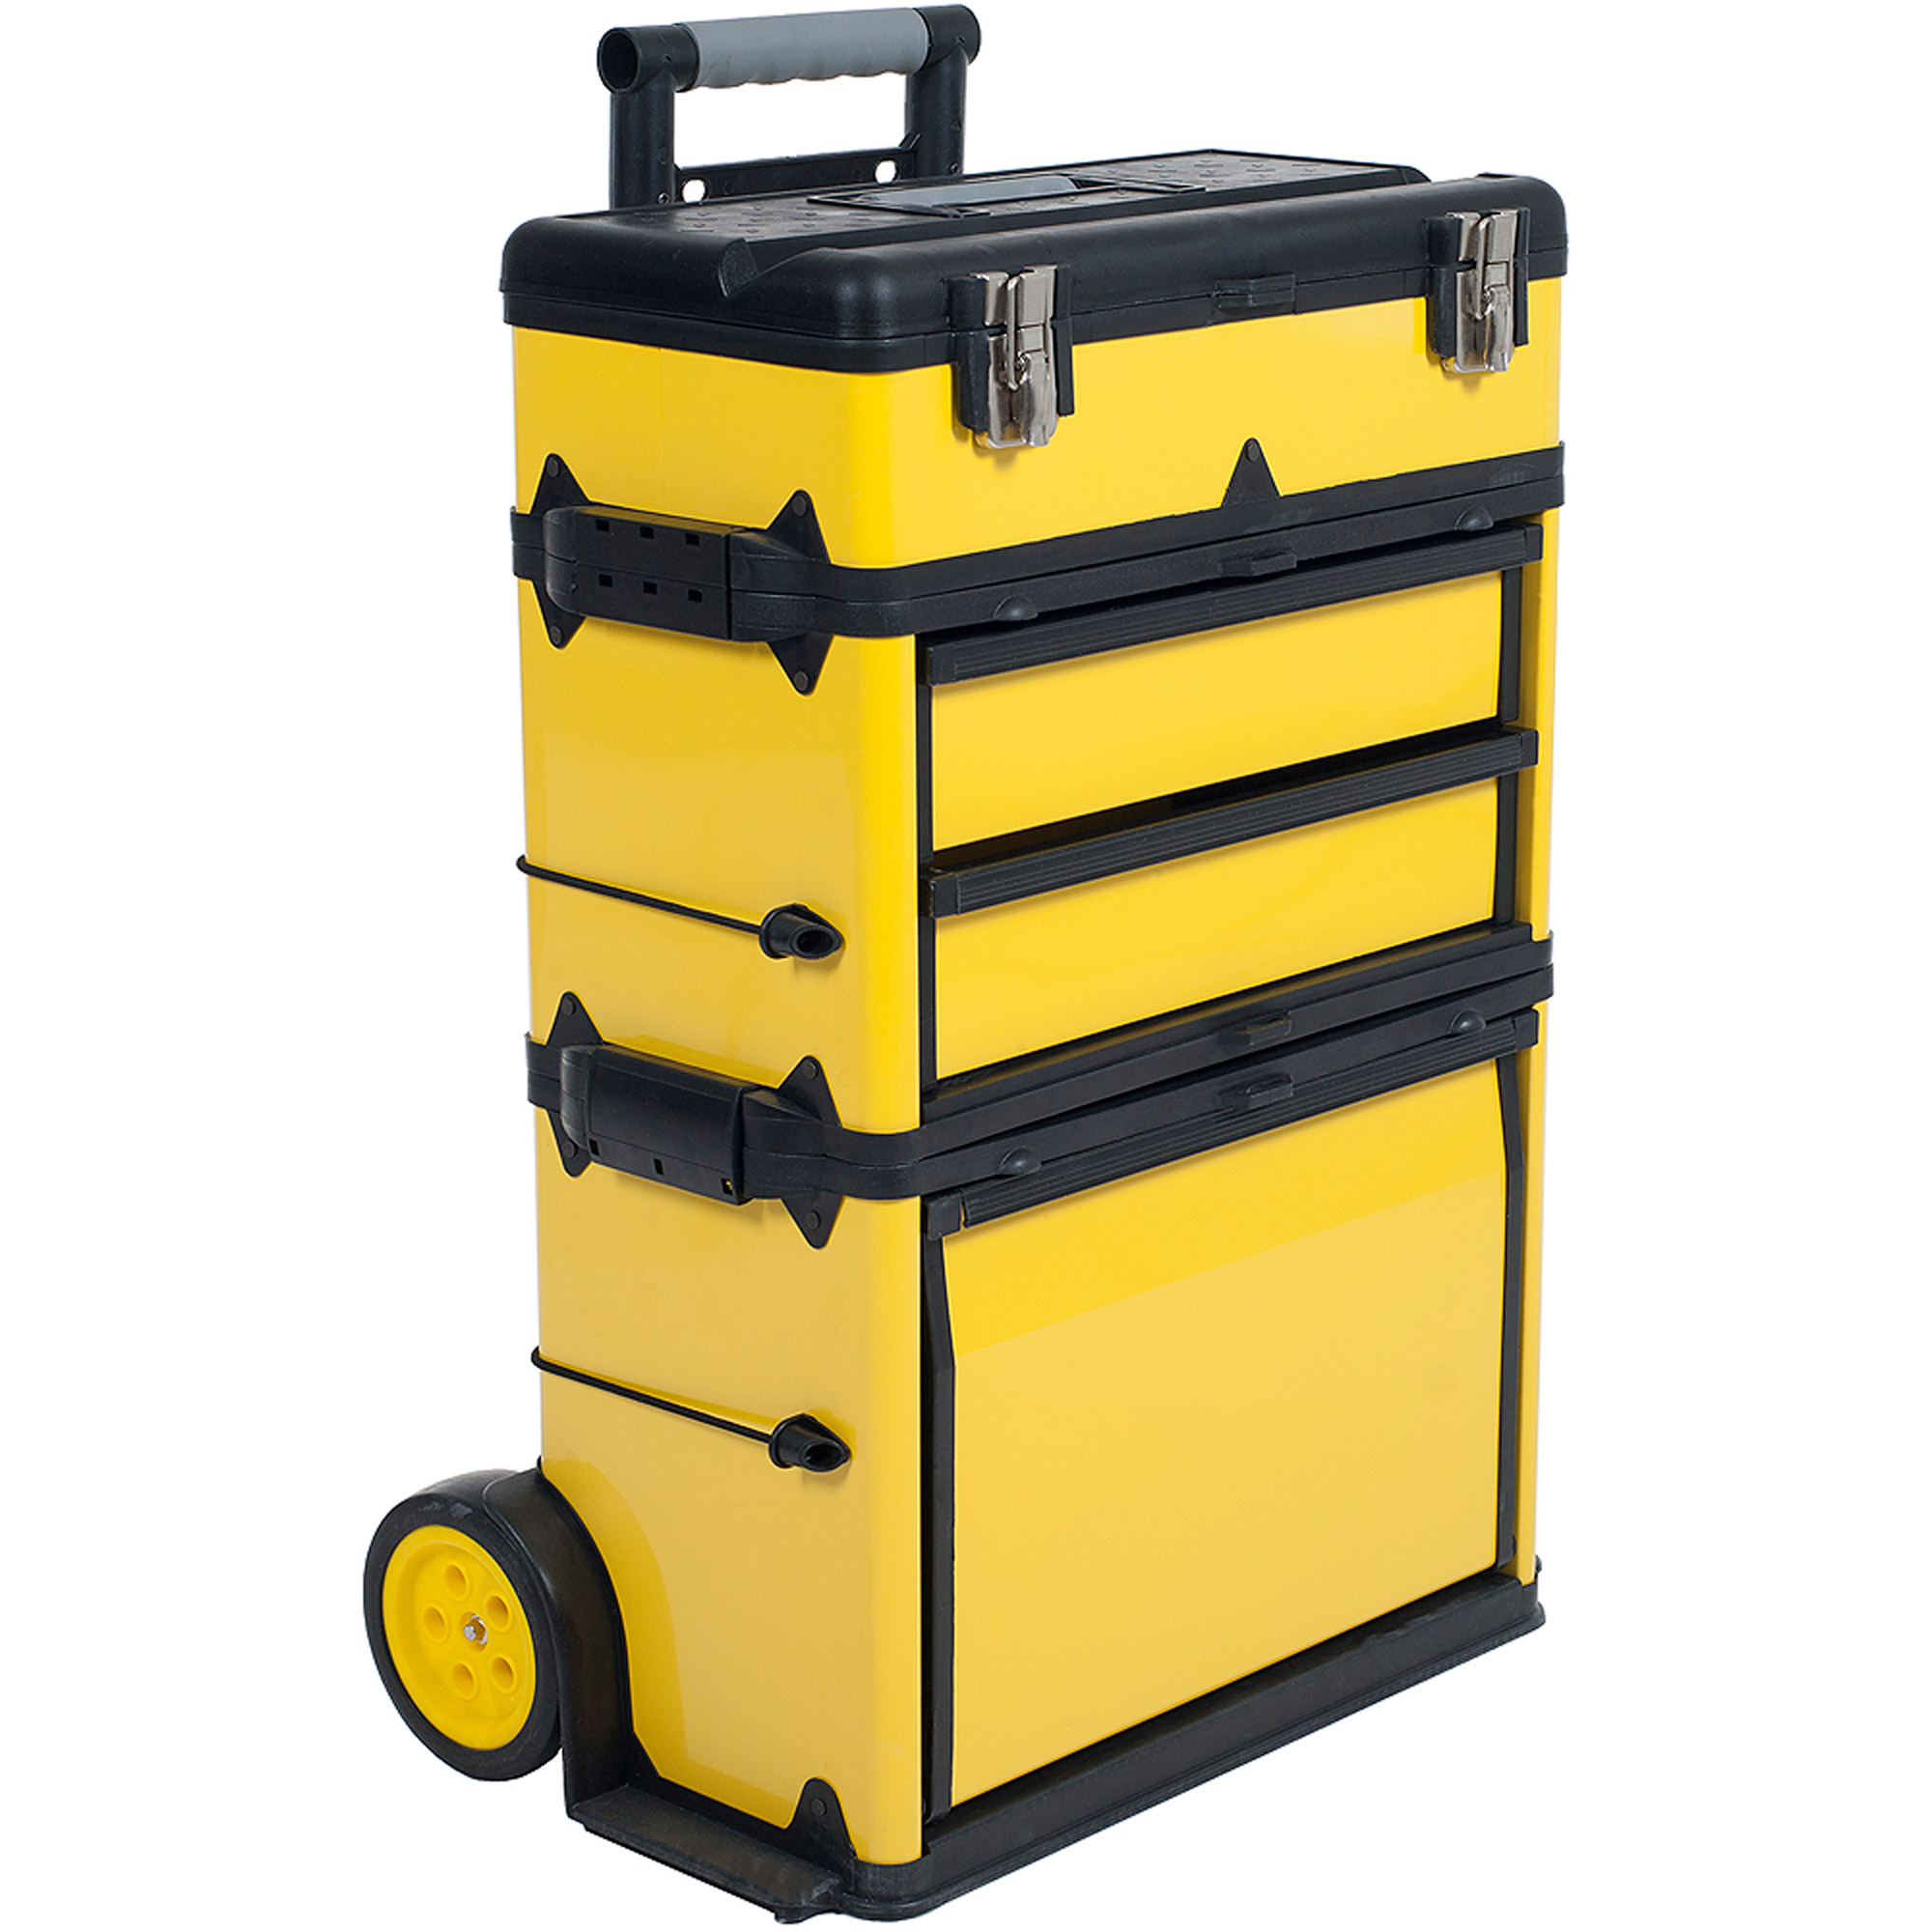 Stalwart Rolling Stacking Portable Metal Trolley Toolbox Chest - Walmart.com